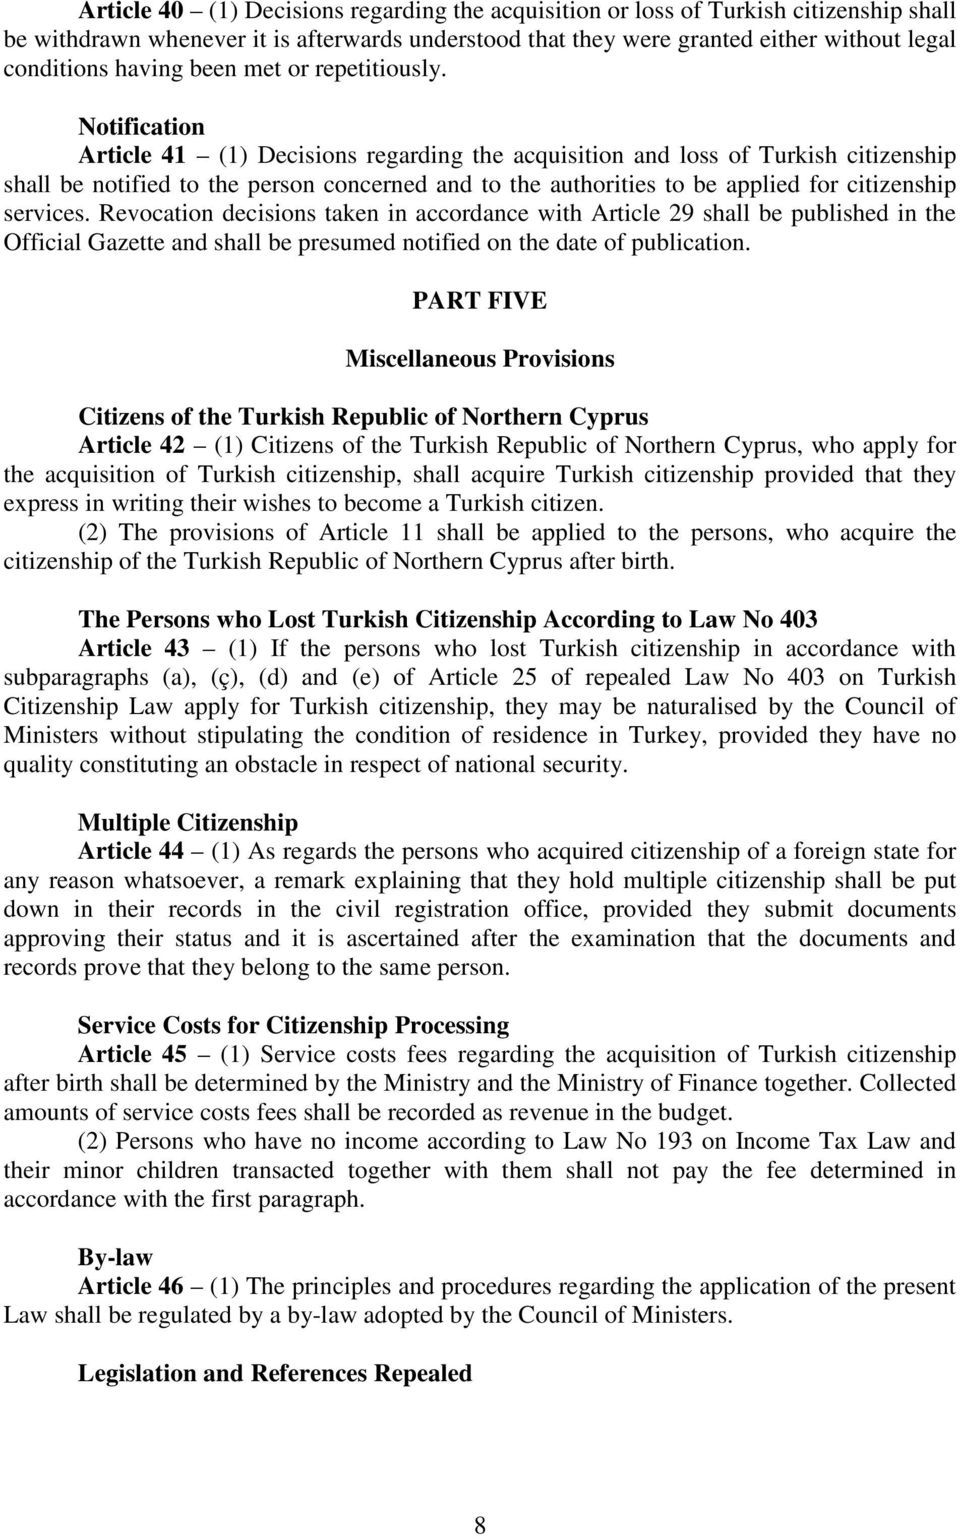 Notification Article 41 (1) Decisions regarding the acquisition and loss of Turkish citizenship shall be notified to the person concerned and to the authorities to be applied for citizenship services.